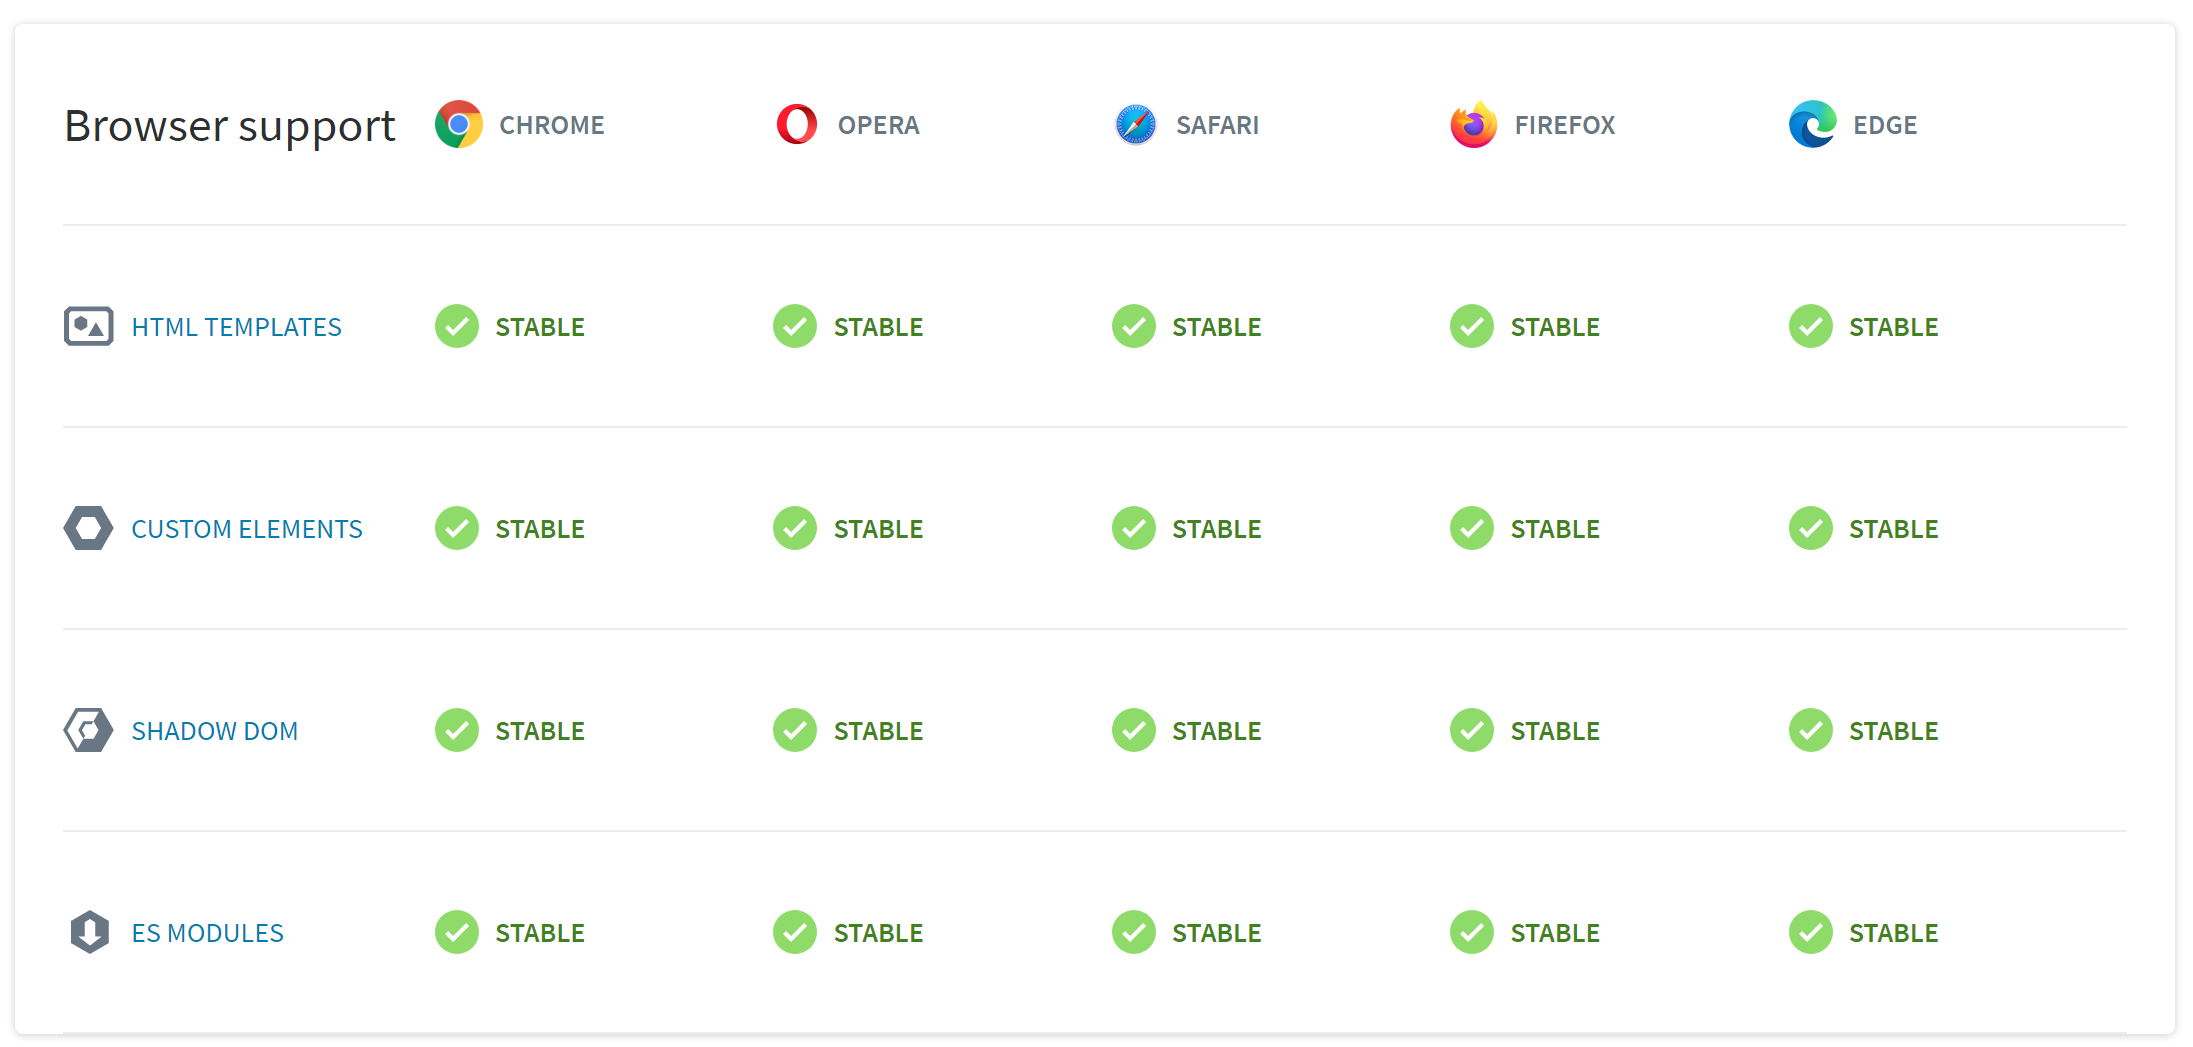 browser support table for web components. All modern browsers are supported, including Safari